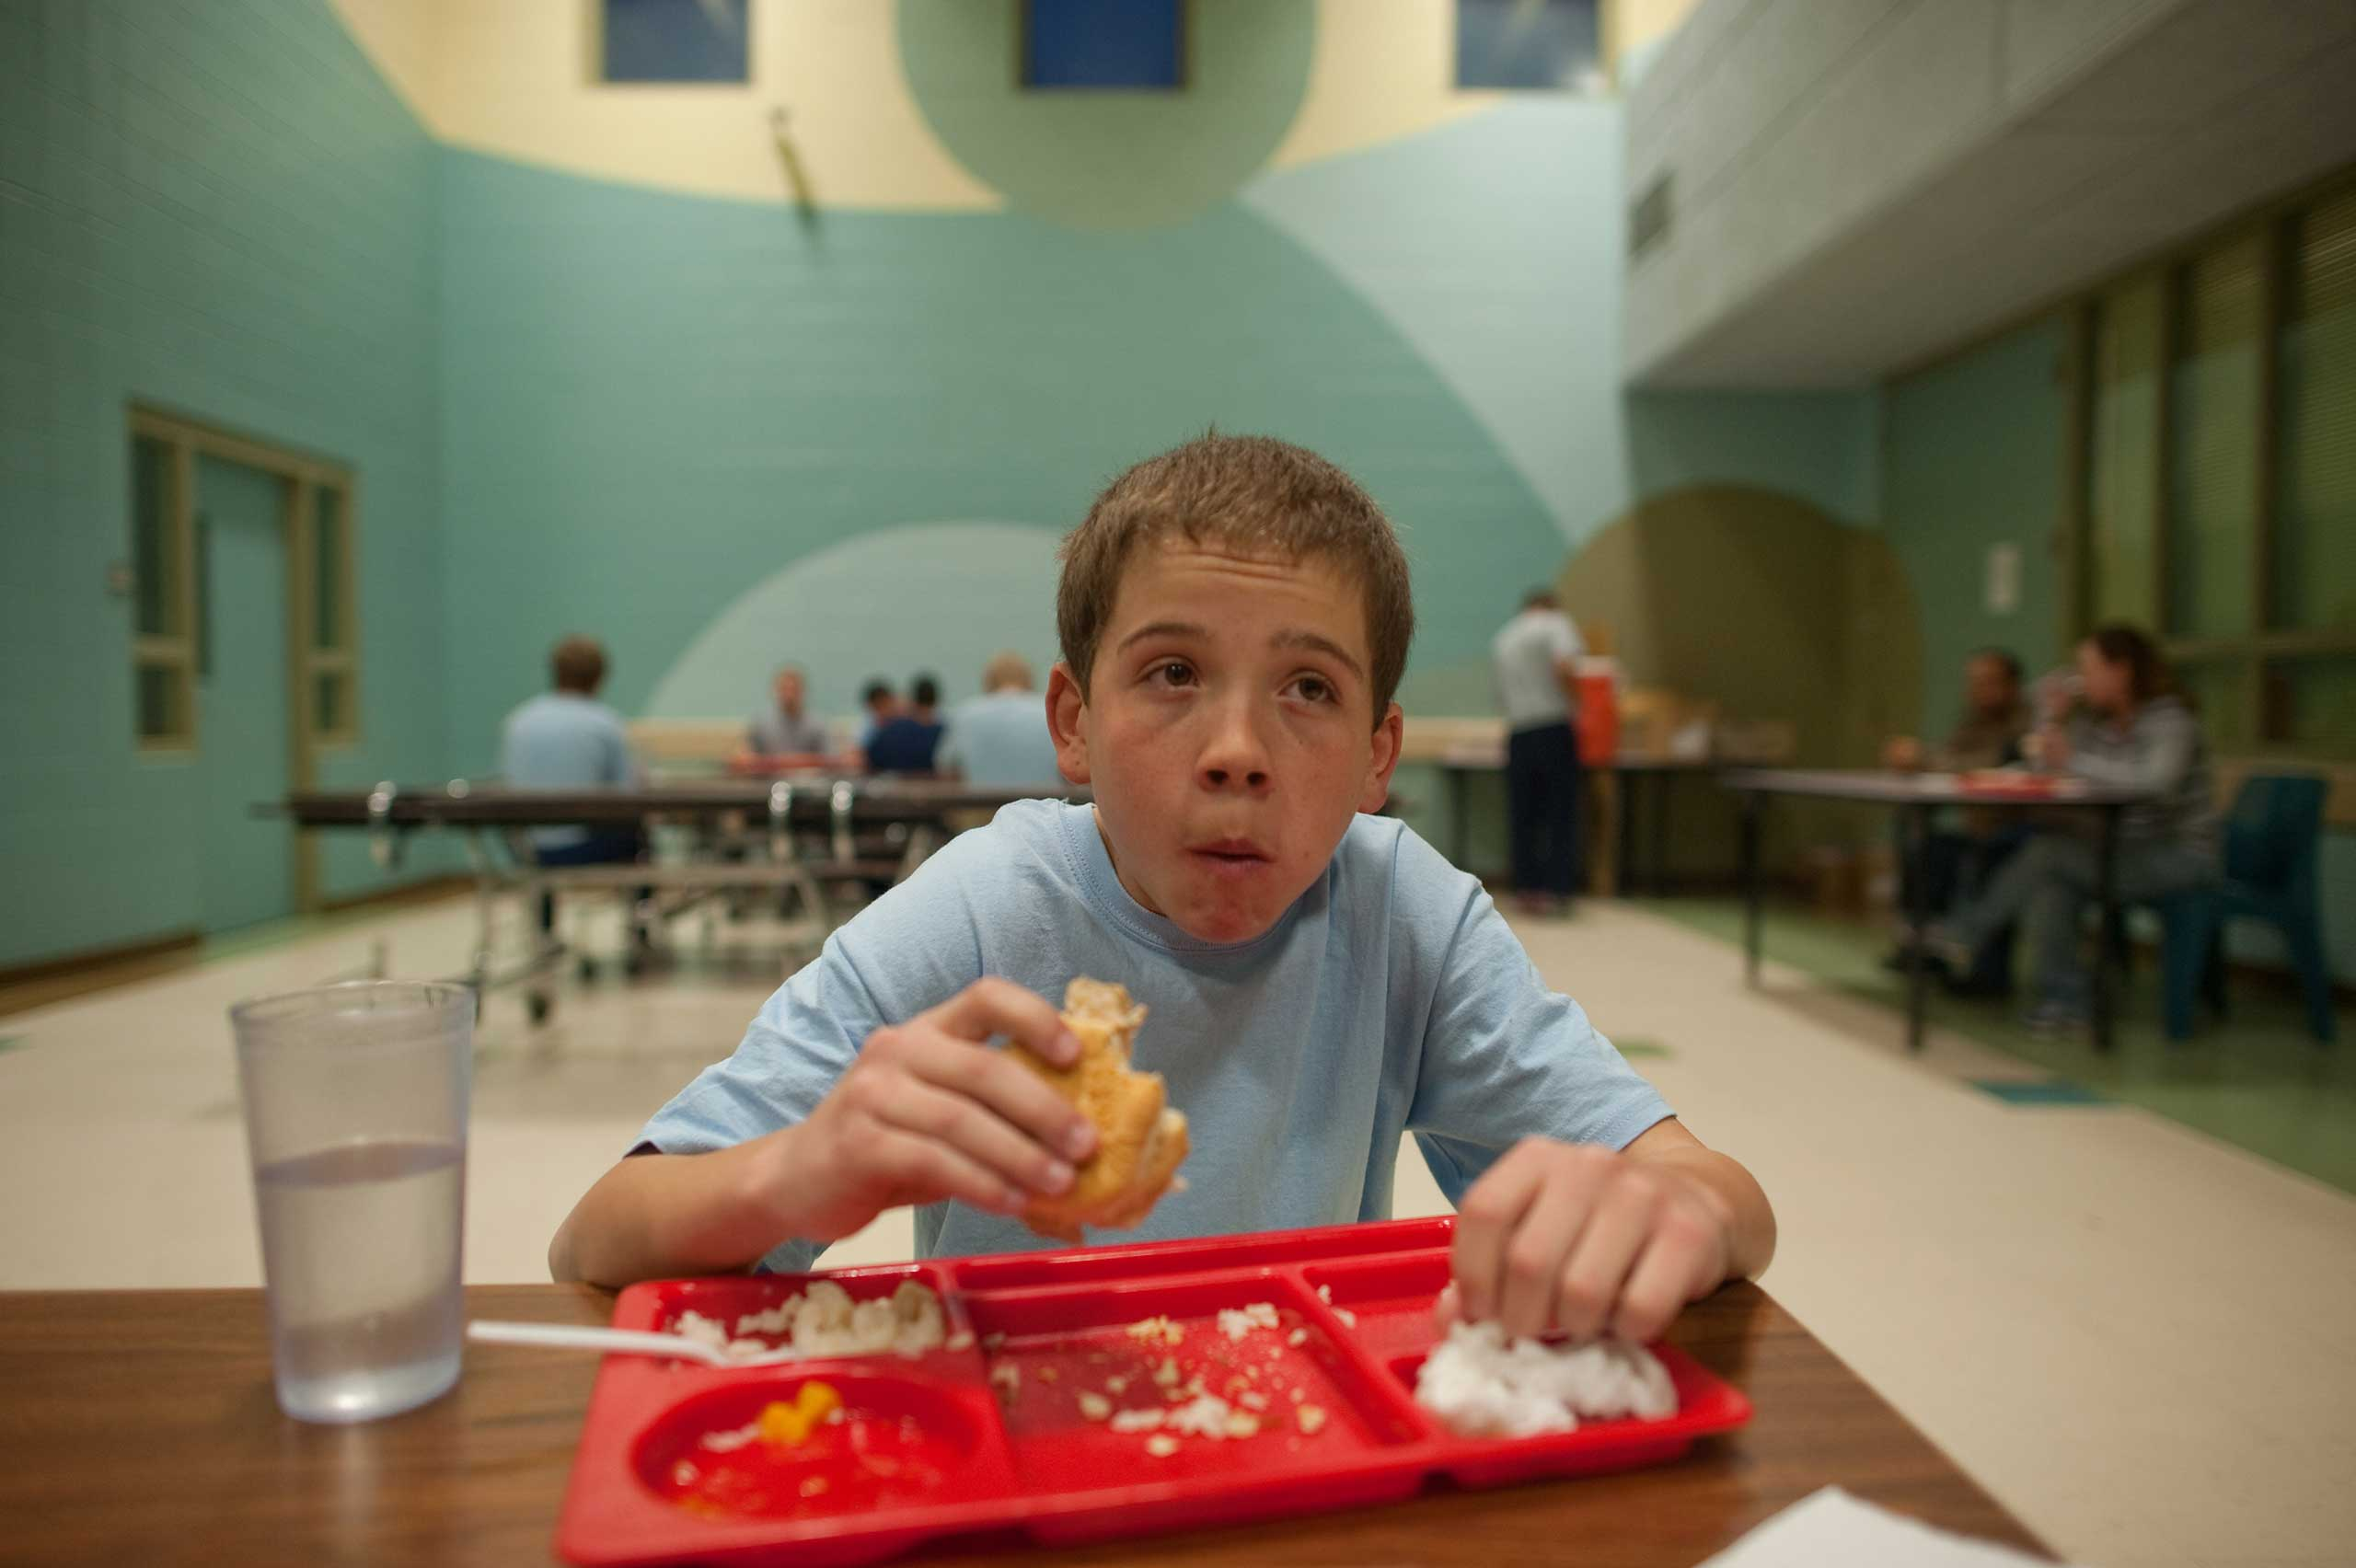 Vinny eats his first meal in the detention center cafeteria.